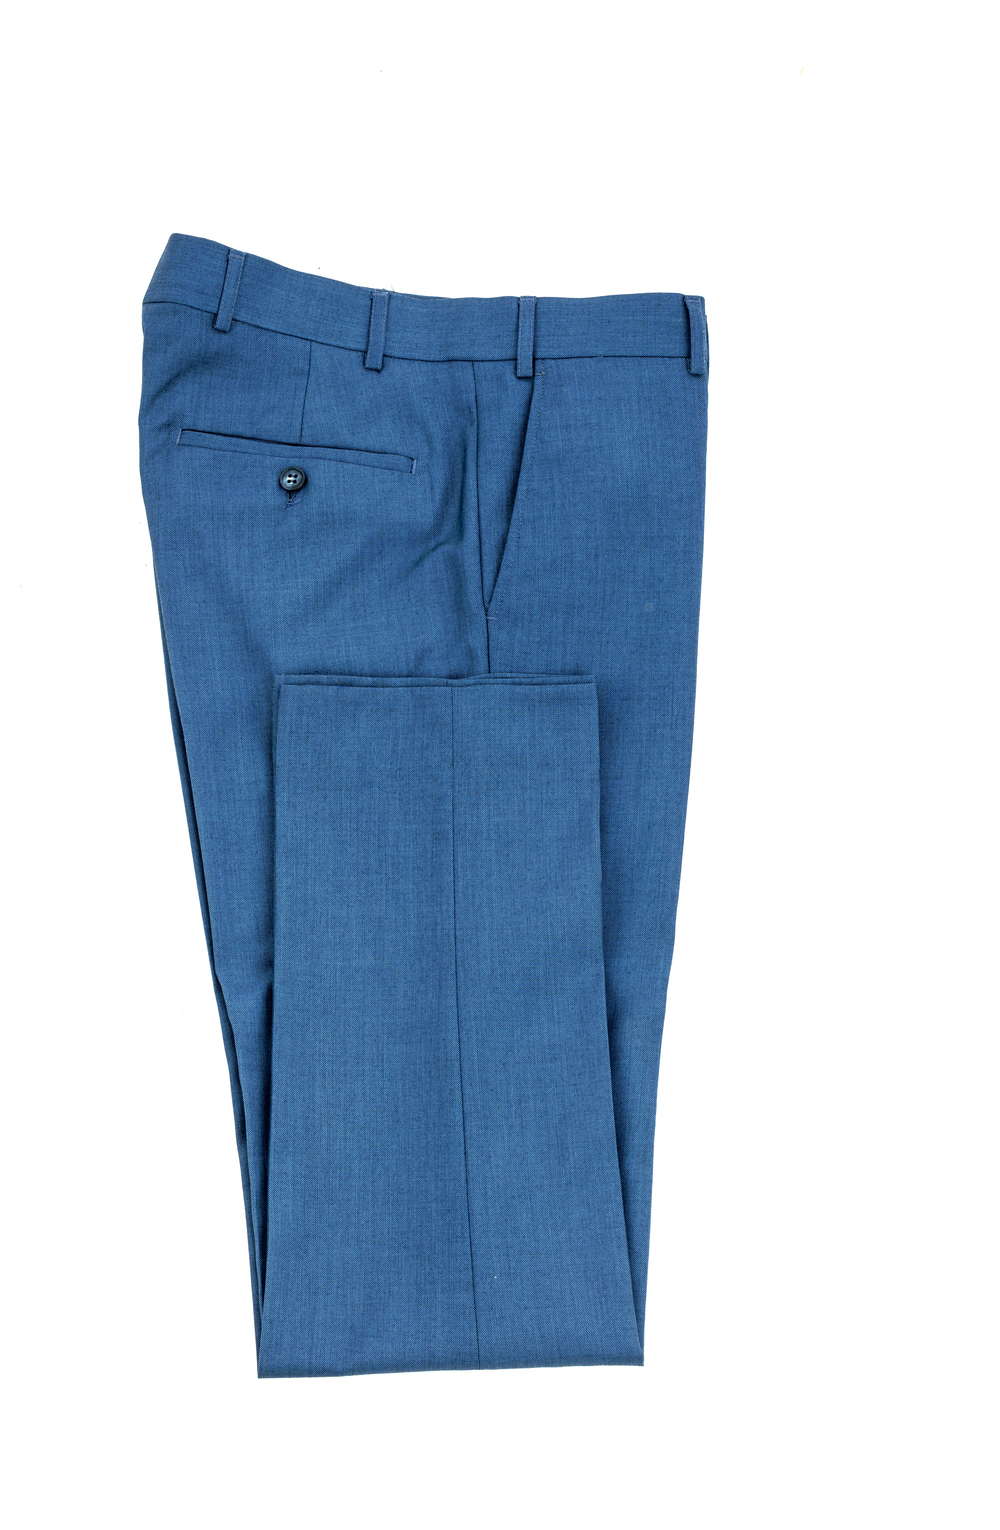 Christian Brookes Light Blue Trouser